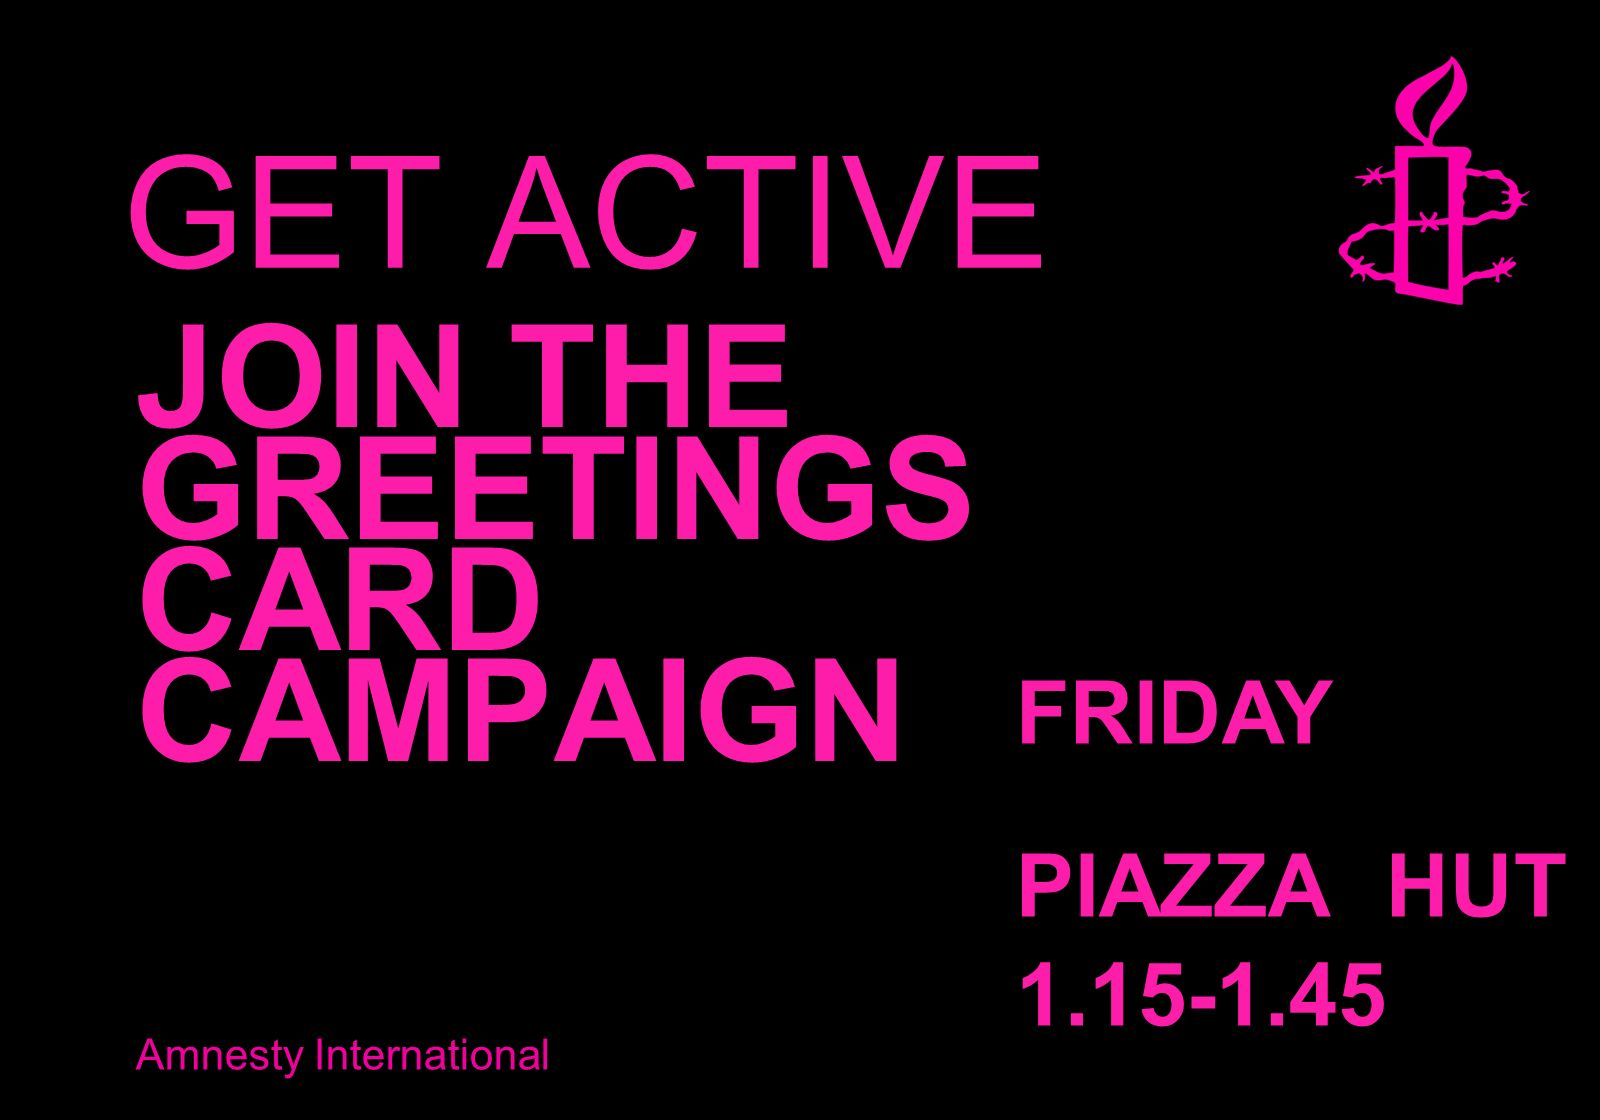 Amnesty International GET ACTIVE JOIN THE GREETINGS CARD CAMPAIGN FRIDAY PIAZZA HUT 1.15-1.45